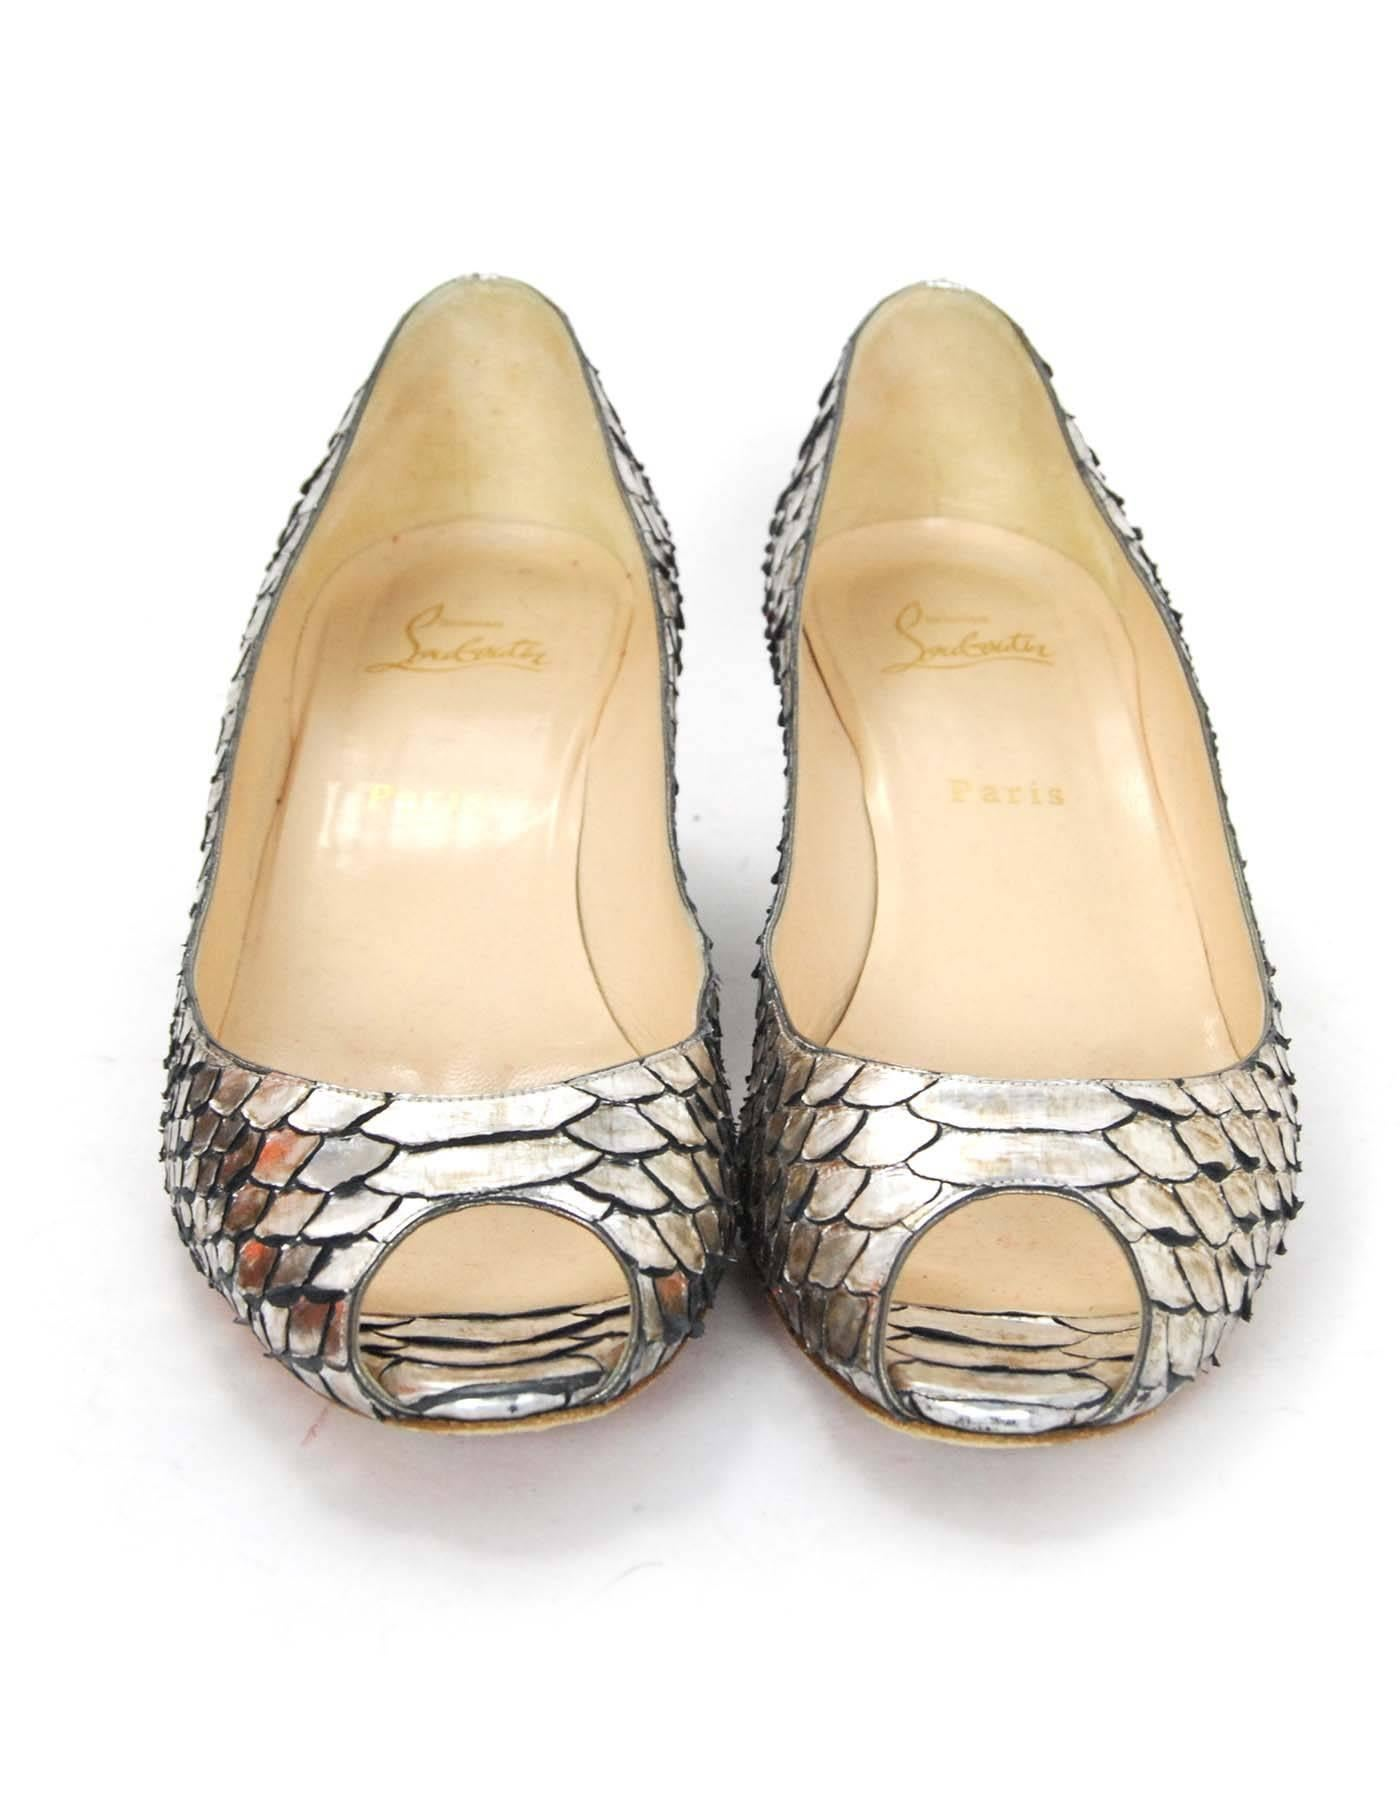 super popular e3f44 8bee5 Christian Louboutin Silver Python Open-Toe Wedges Sz 40.5